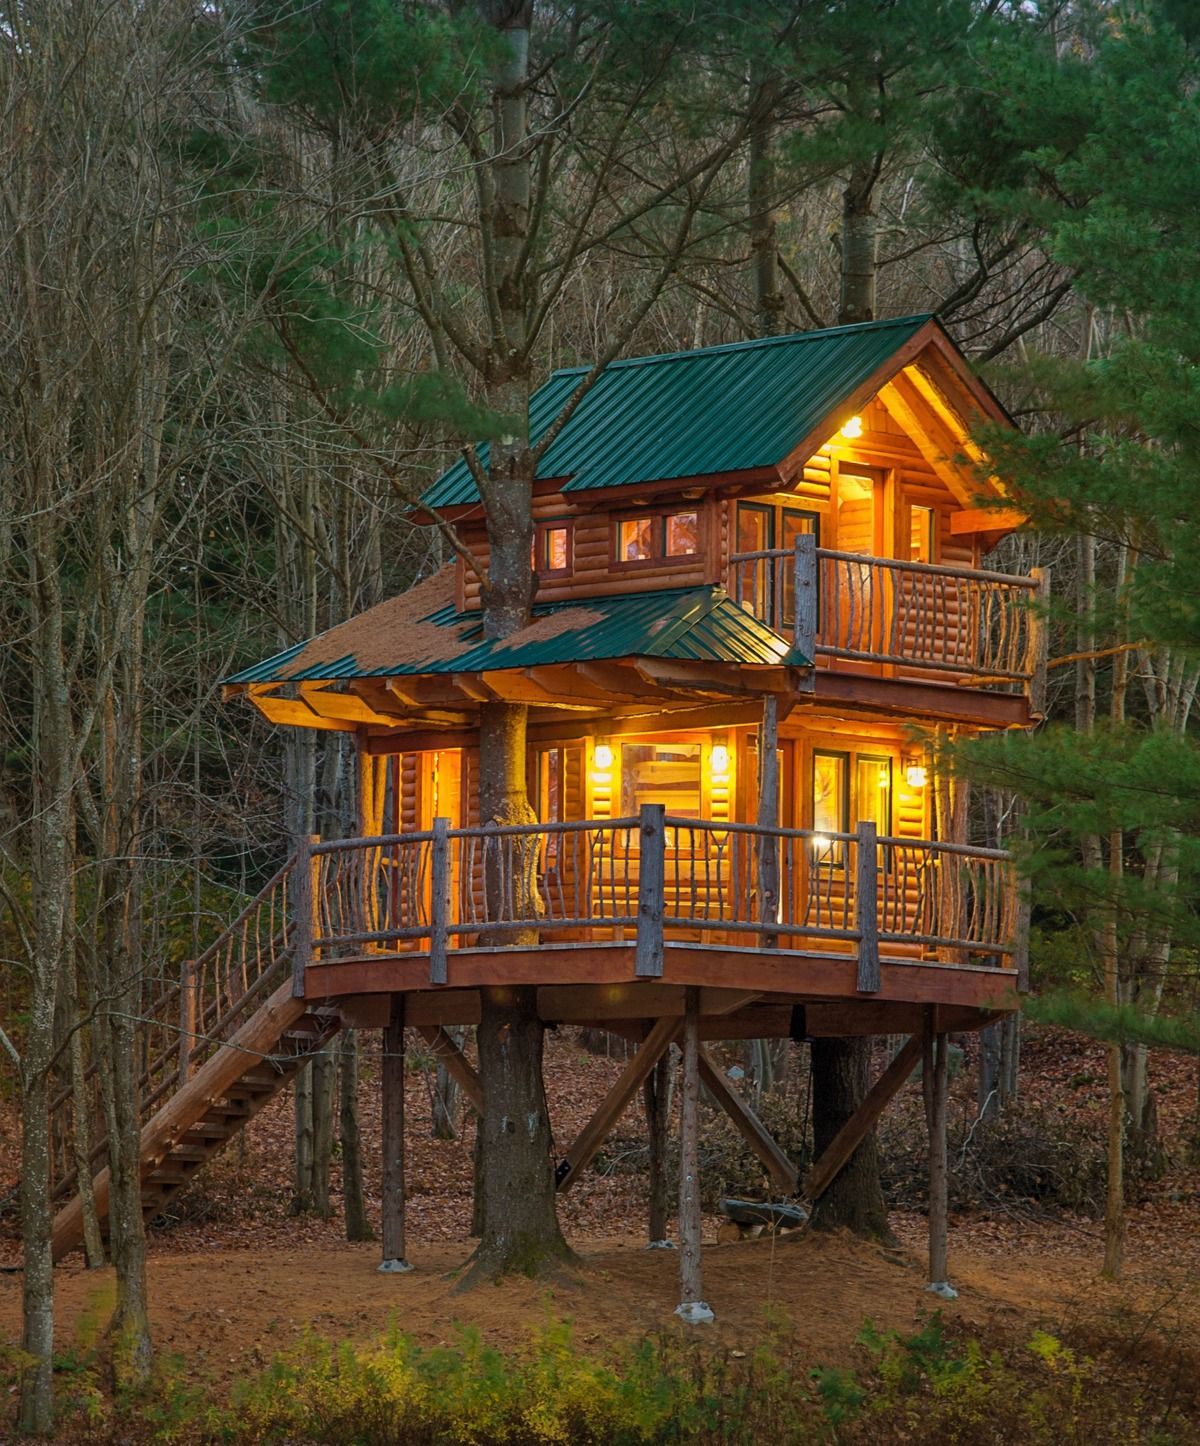 A treehouse in Waterbury, Vermont, complete with Wi-Fi and a coffee machine to boot.